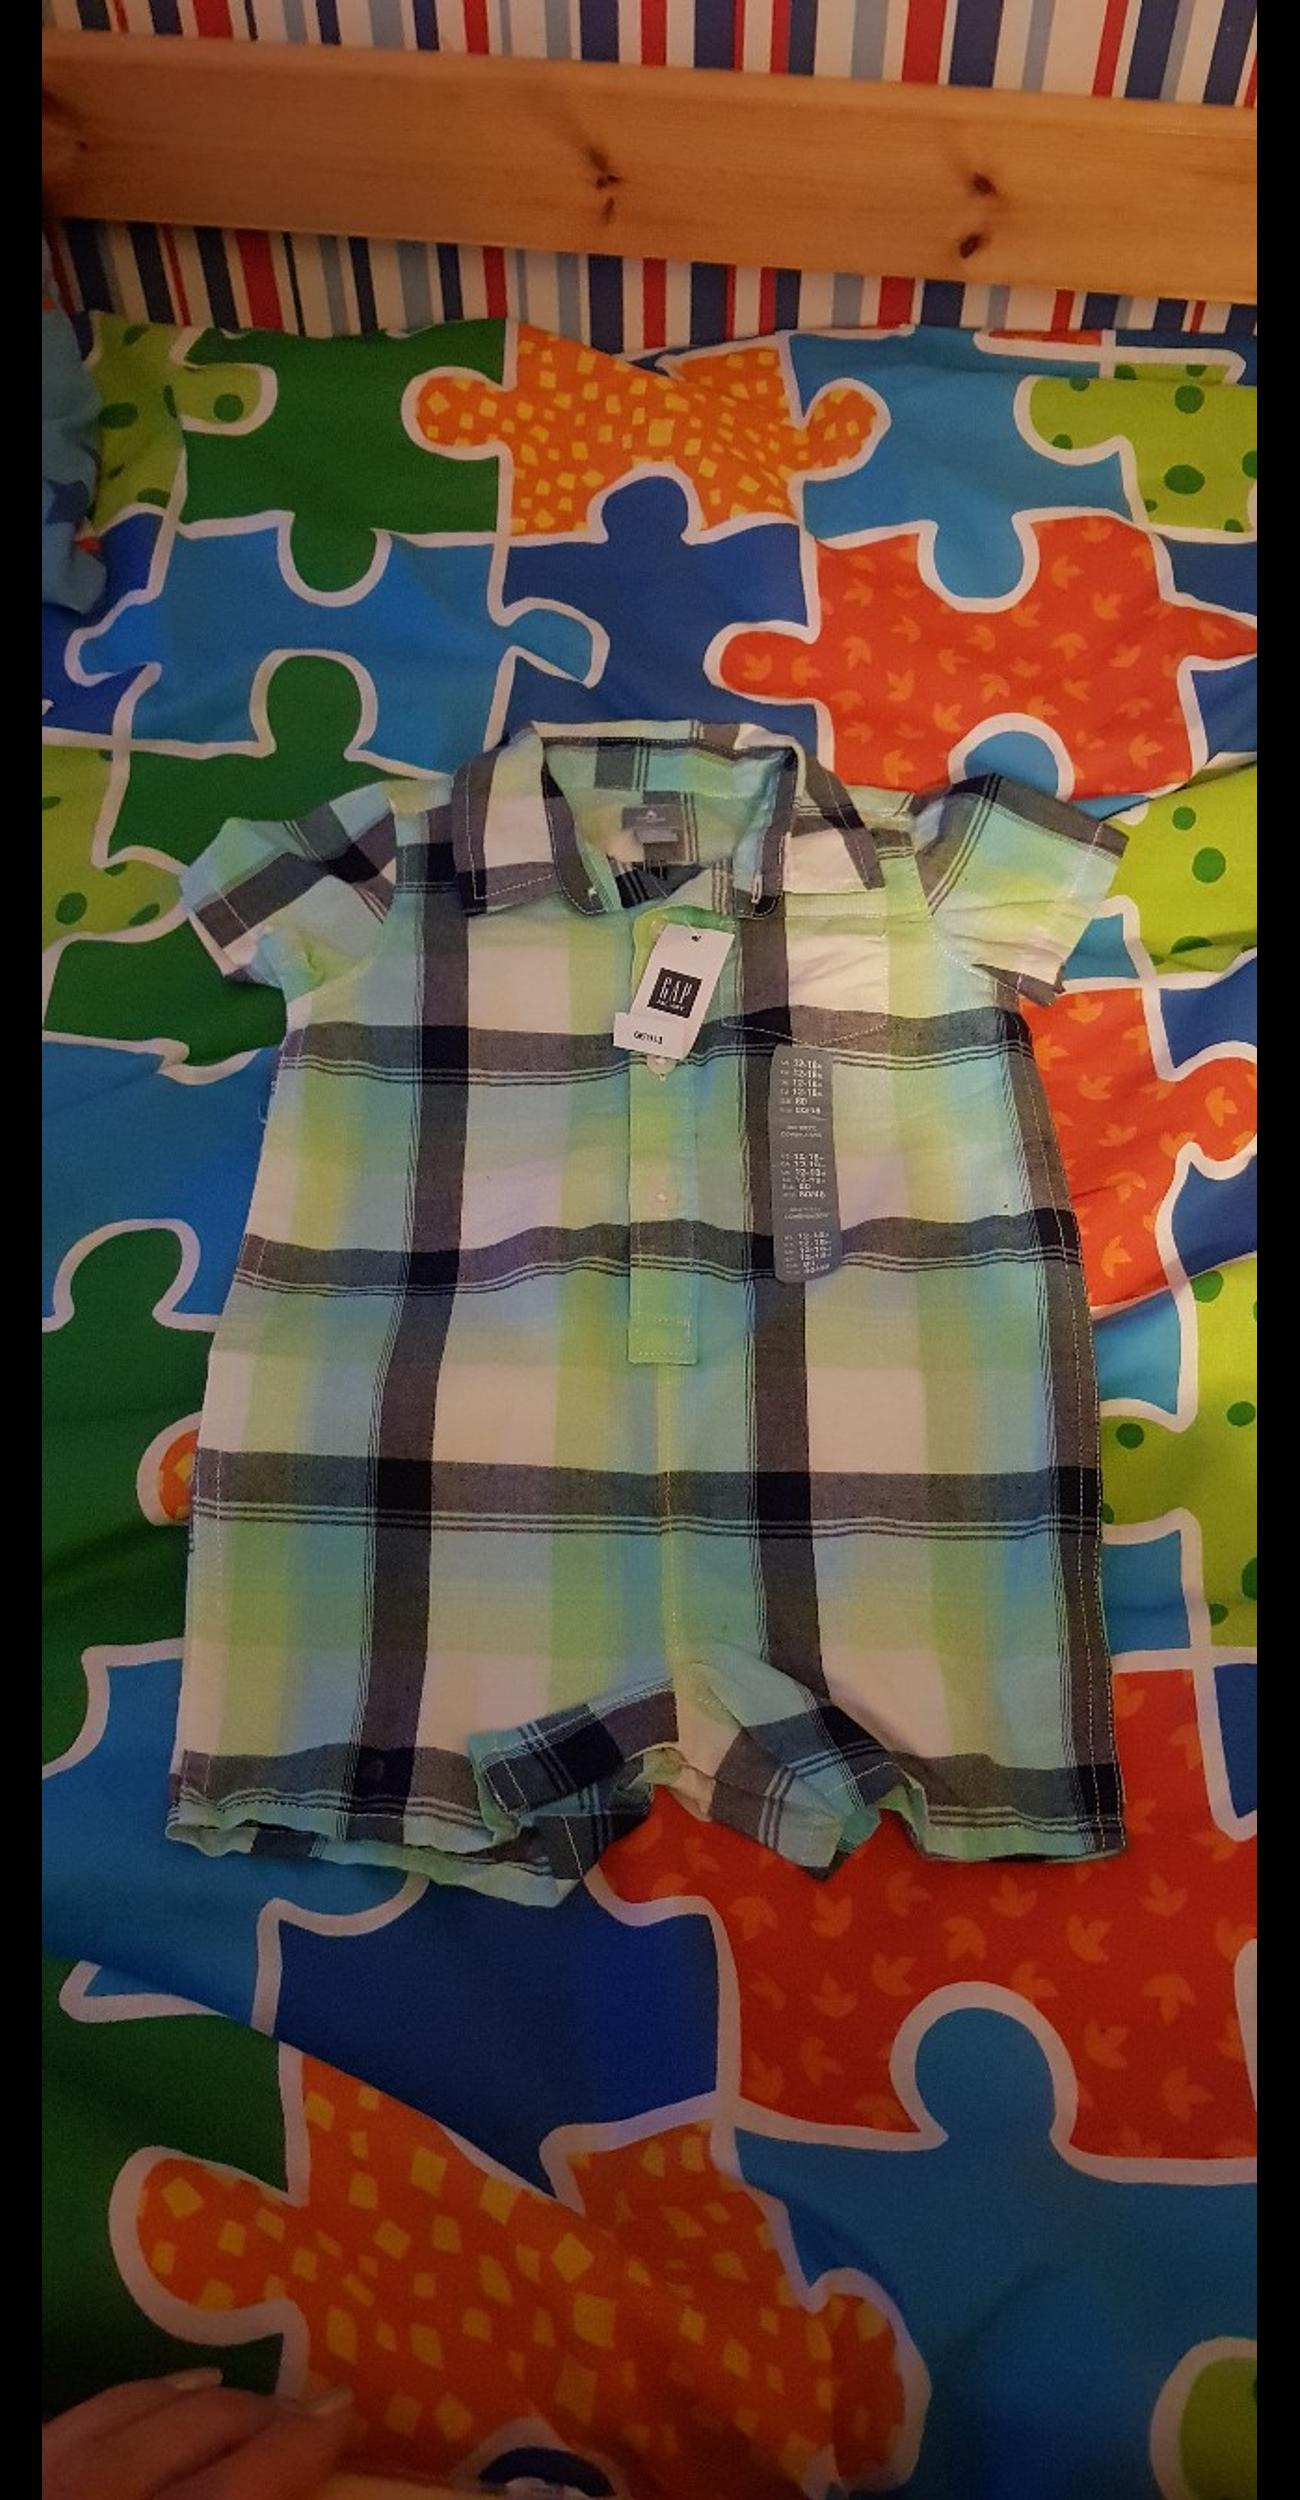 bnwt, gap all in 1 shirt set, age 18m, collection please thanks